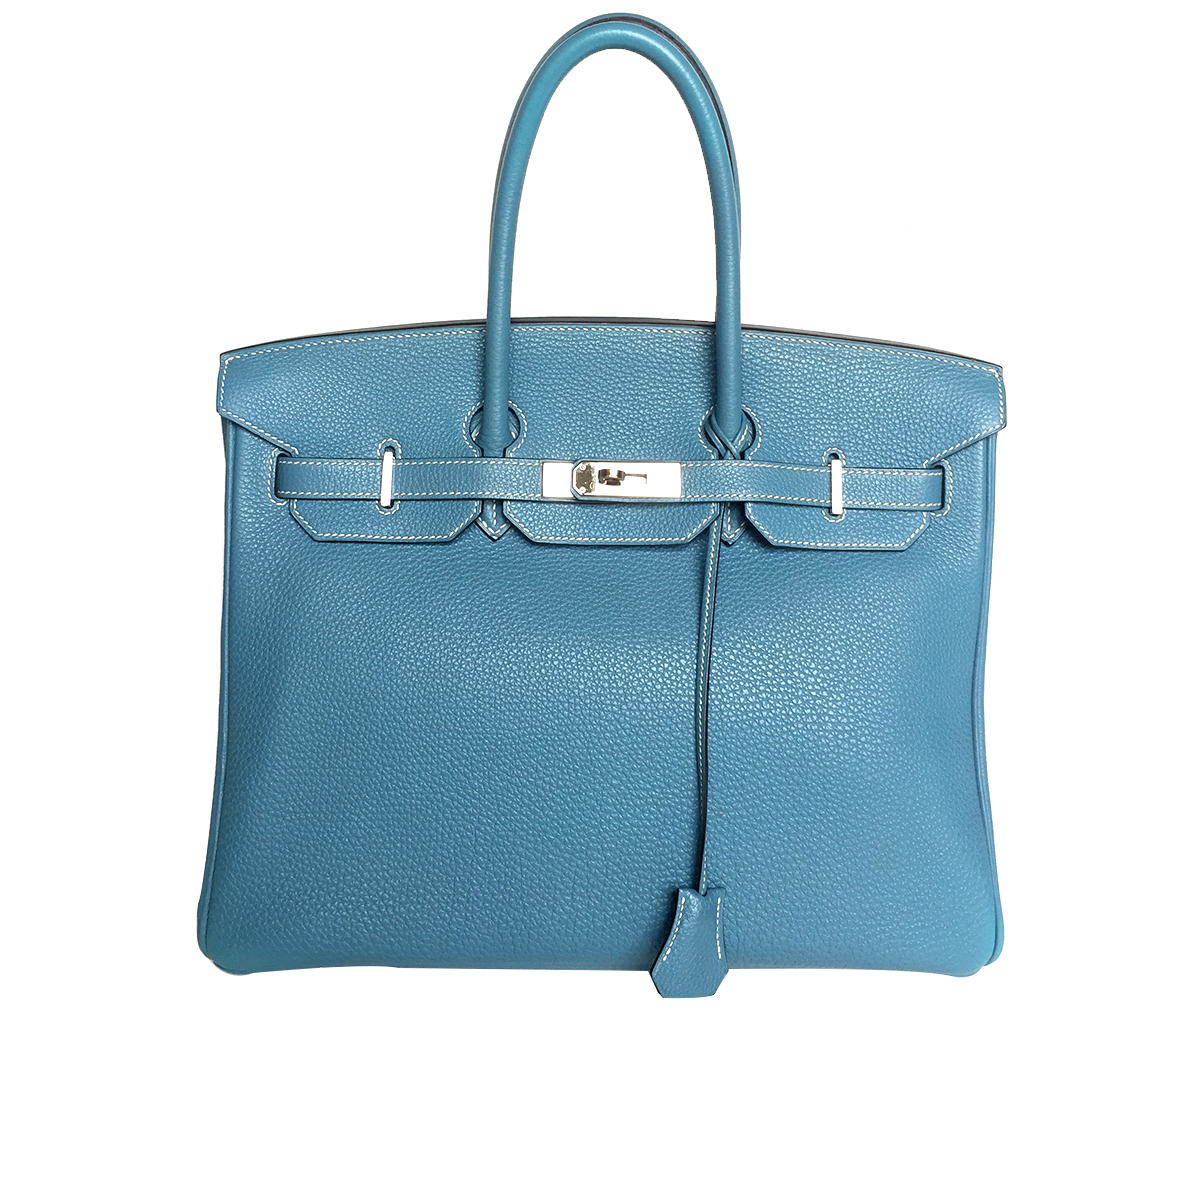 75af47dbe5 Hermès Birkin 35cm Blue Jean Togo Leather with Palladium Hardware Stamp M  2009